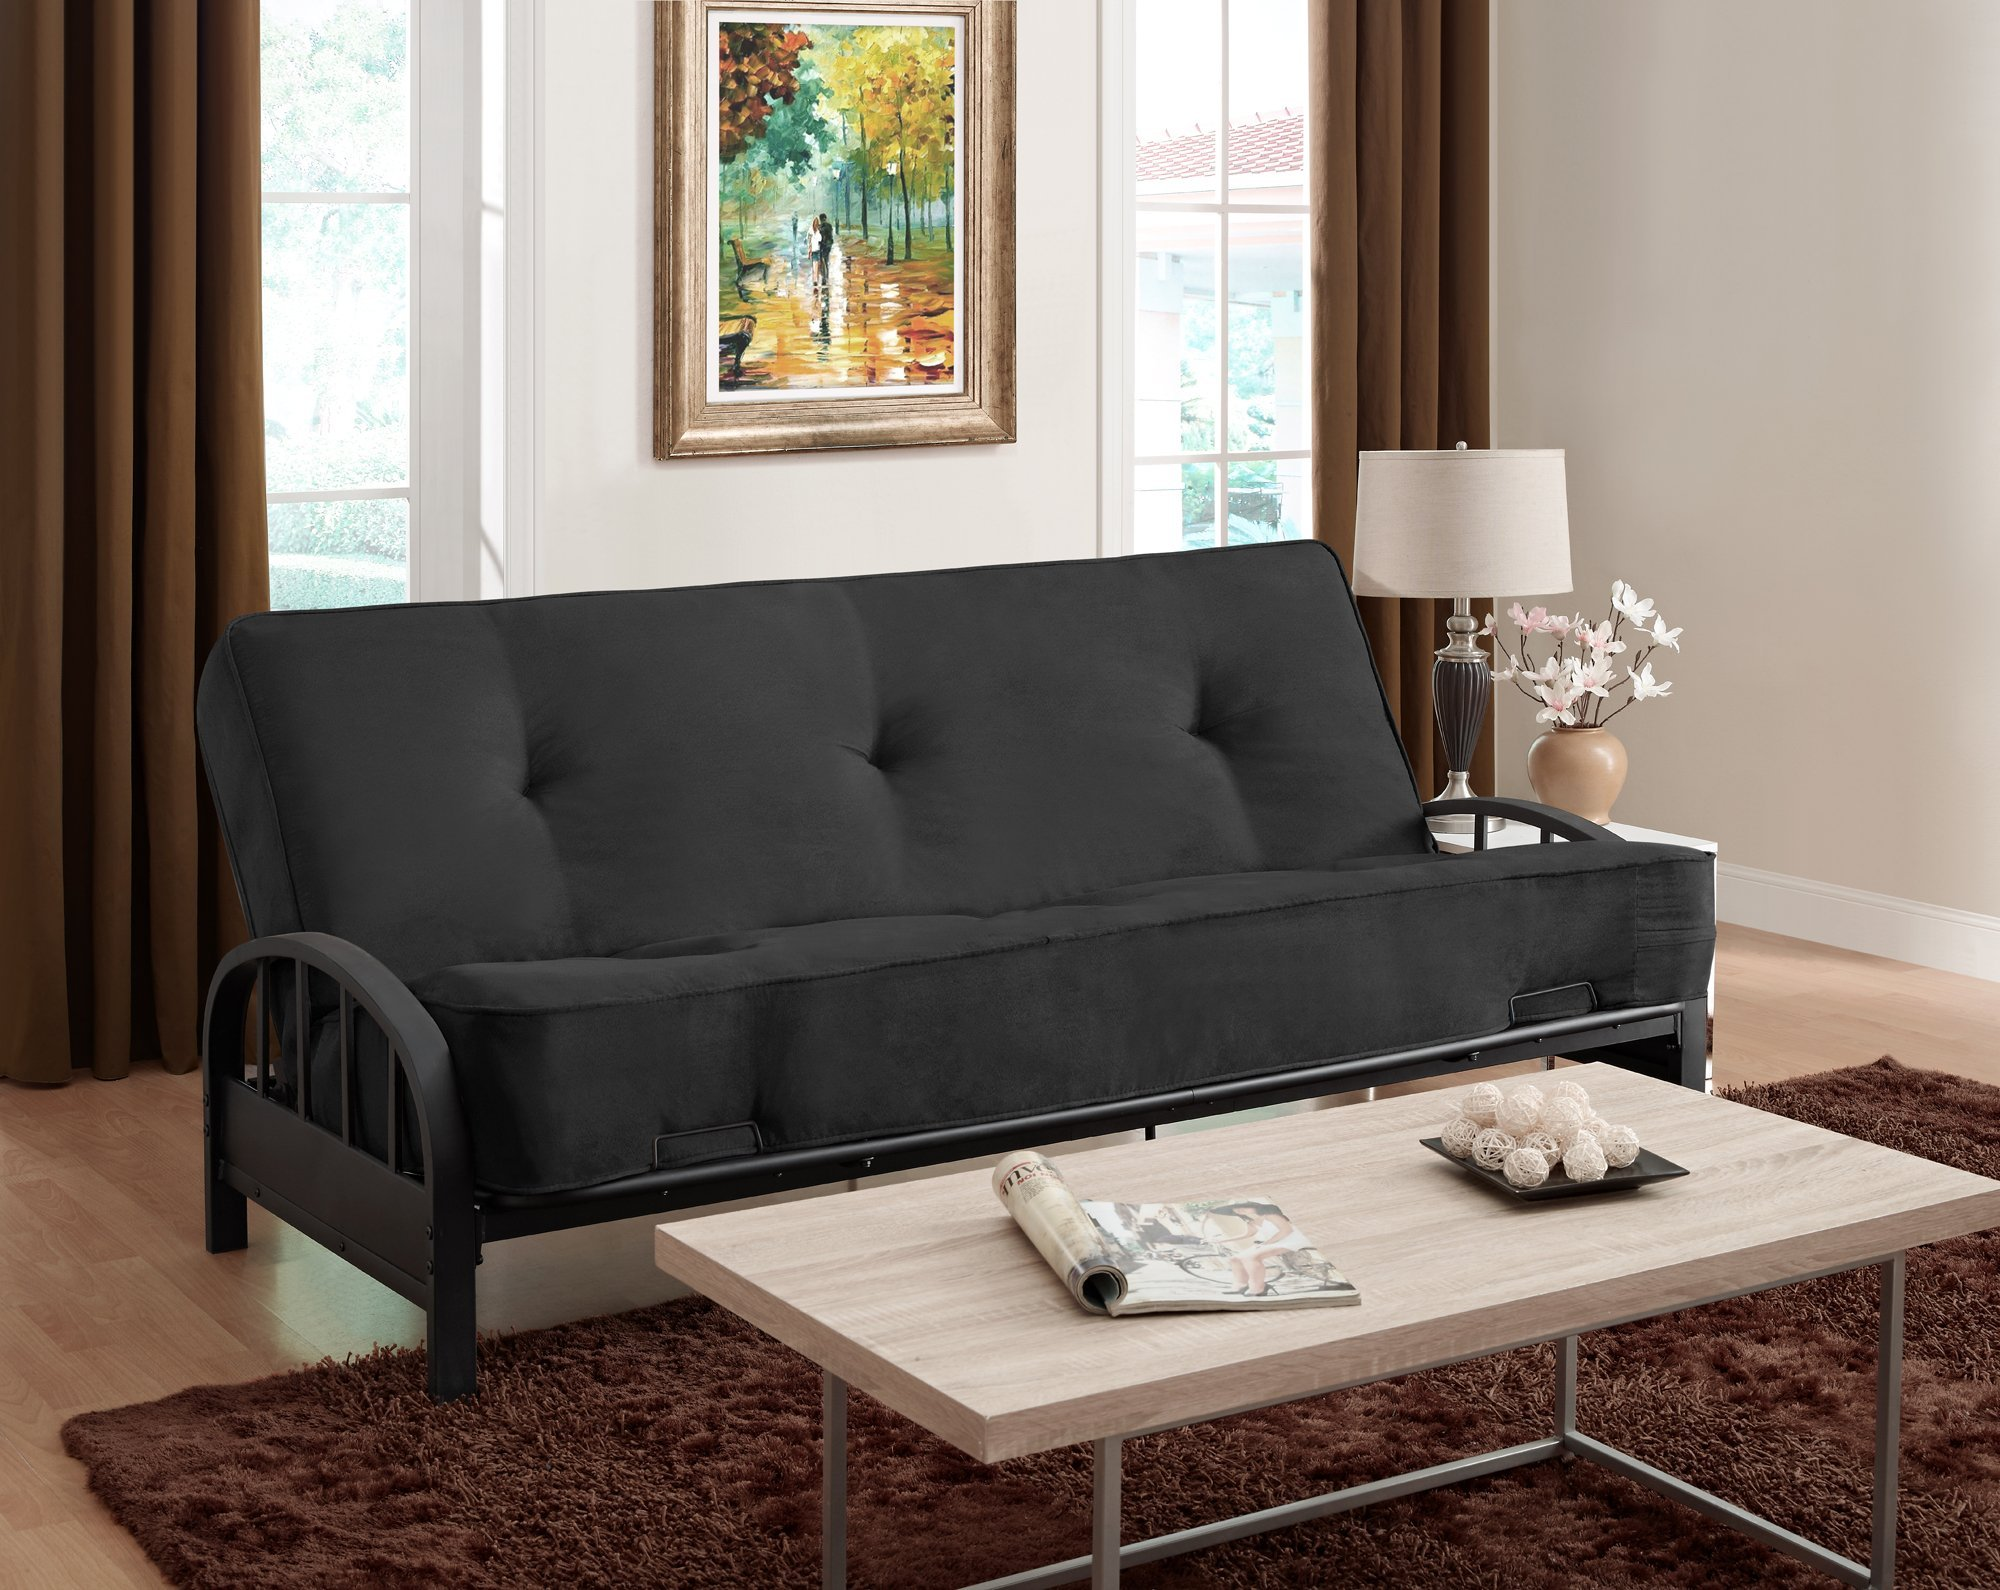 DHP Aiden Futon Metal Frame, Converts Easily to a Full- Size Bed, Black by DHP (Image #6)